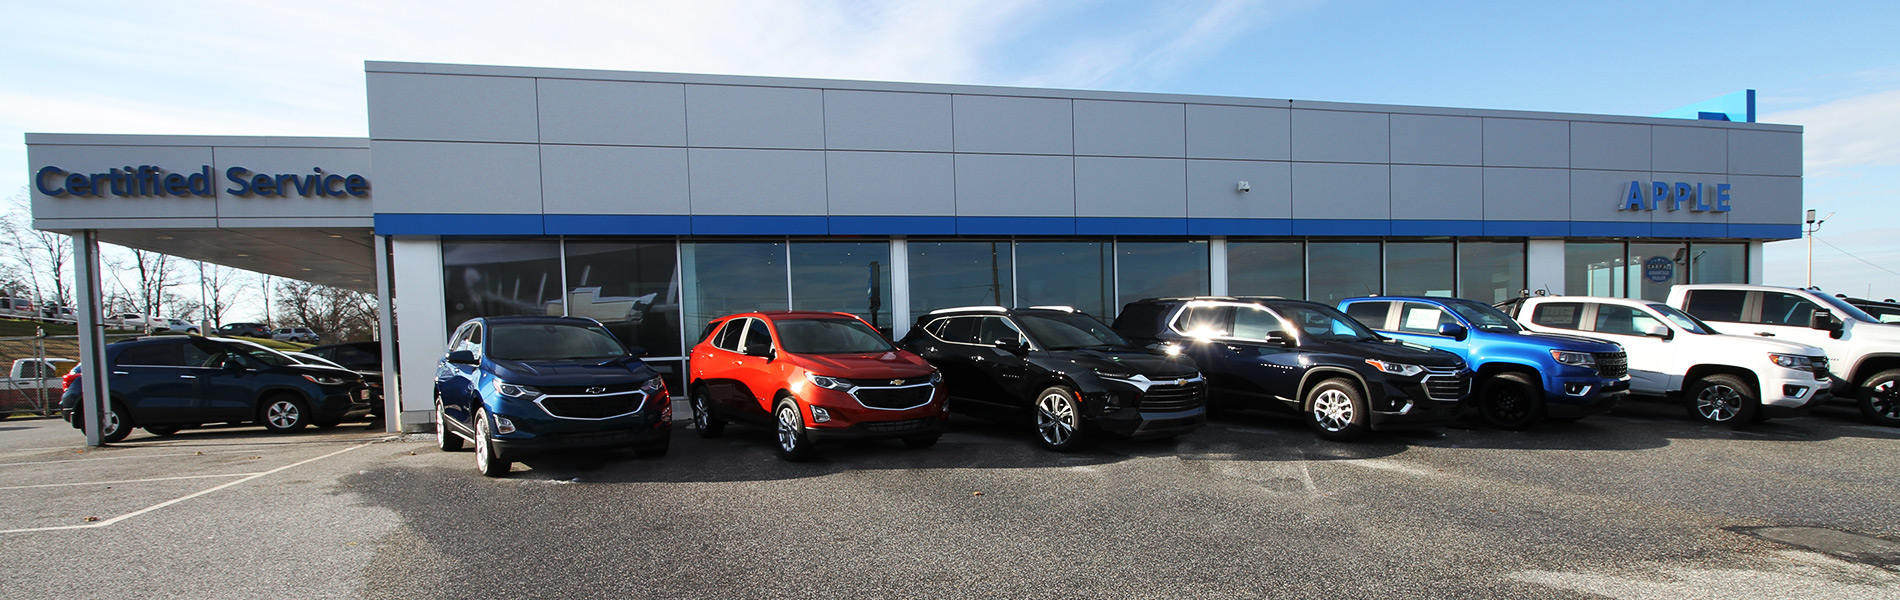 Chevy Dealers Near Me >> Why Buy At Apple Chevrolet Of Red Lion Chevy Dealer Near Me